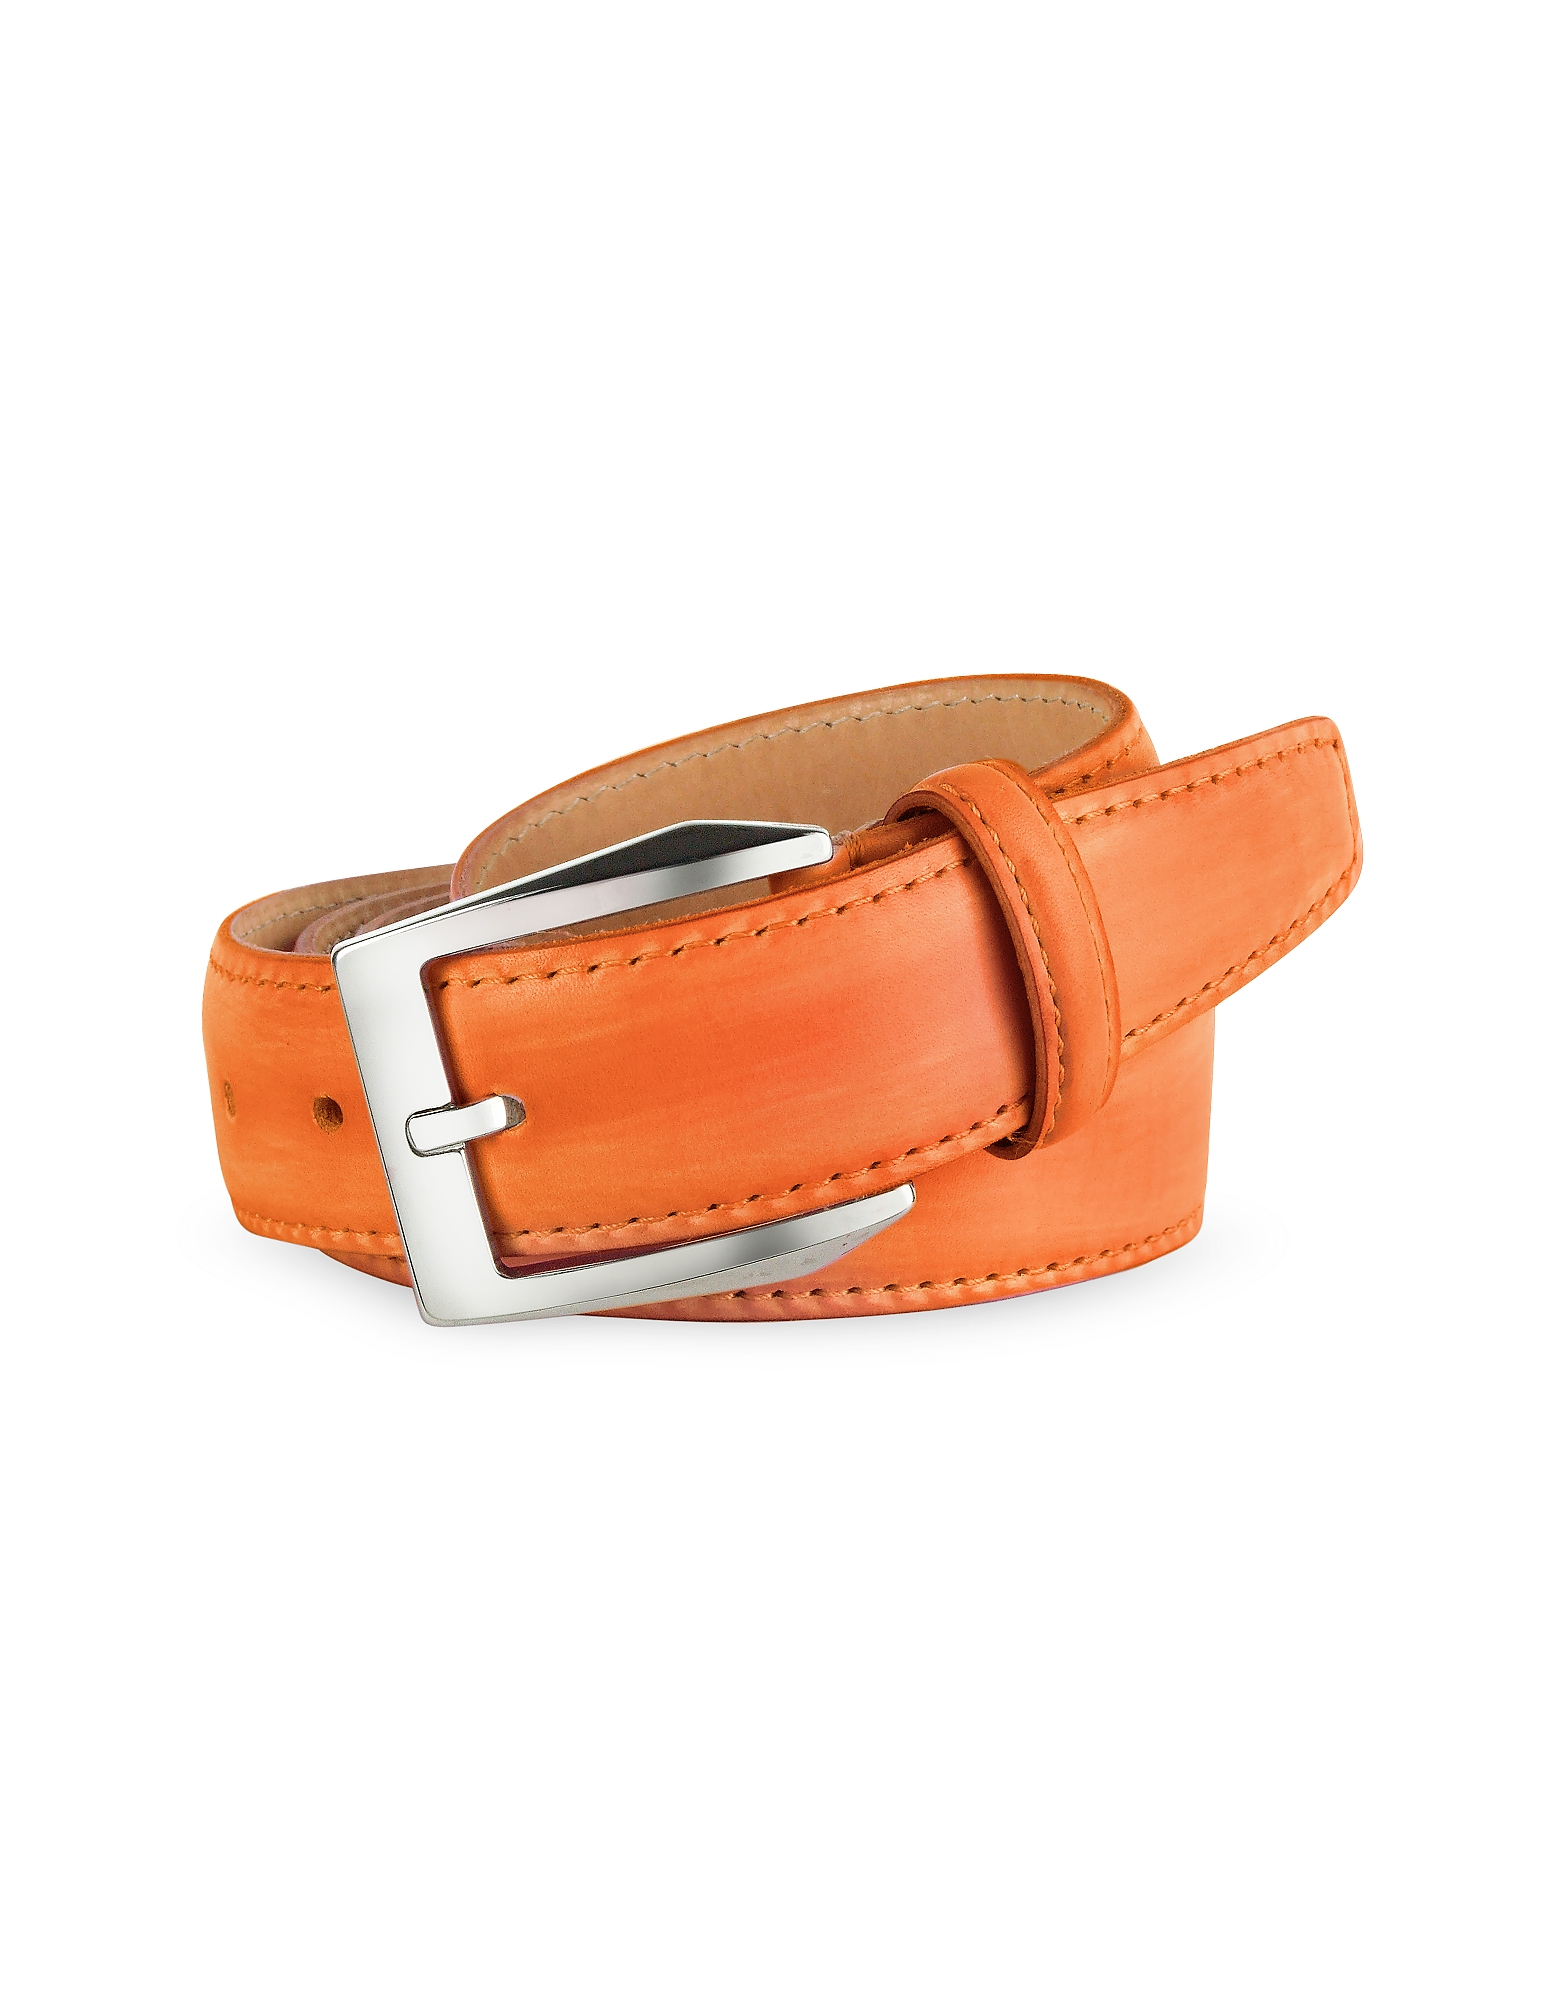 Men's Orange Hand Painted Italian Leather Belt